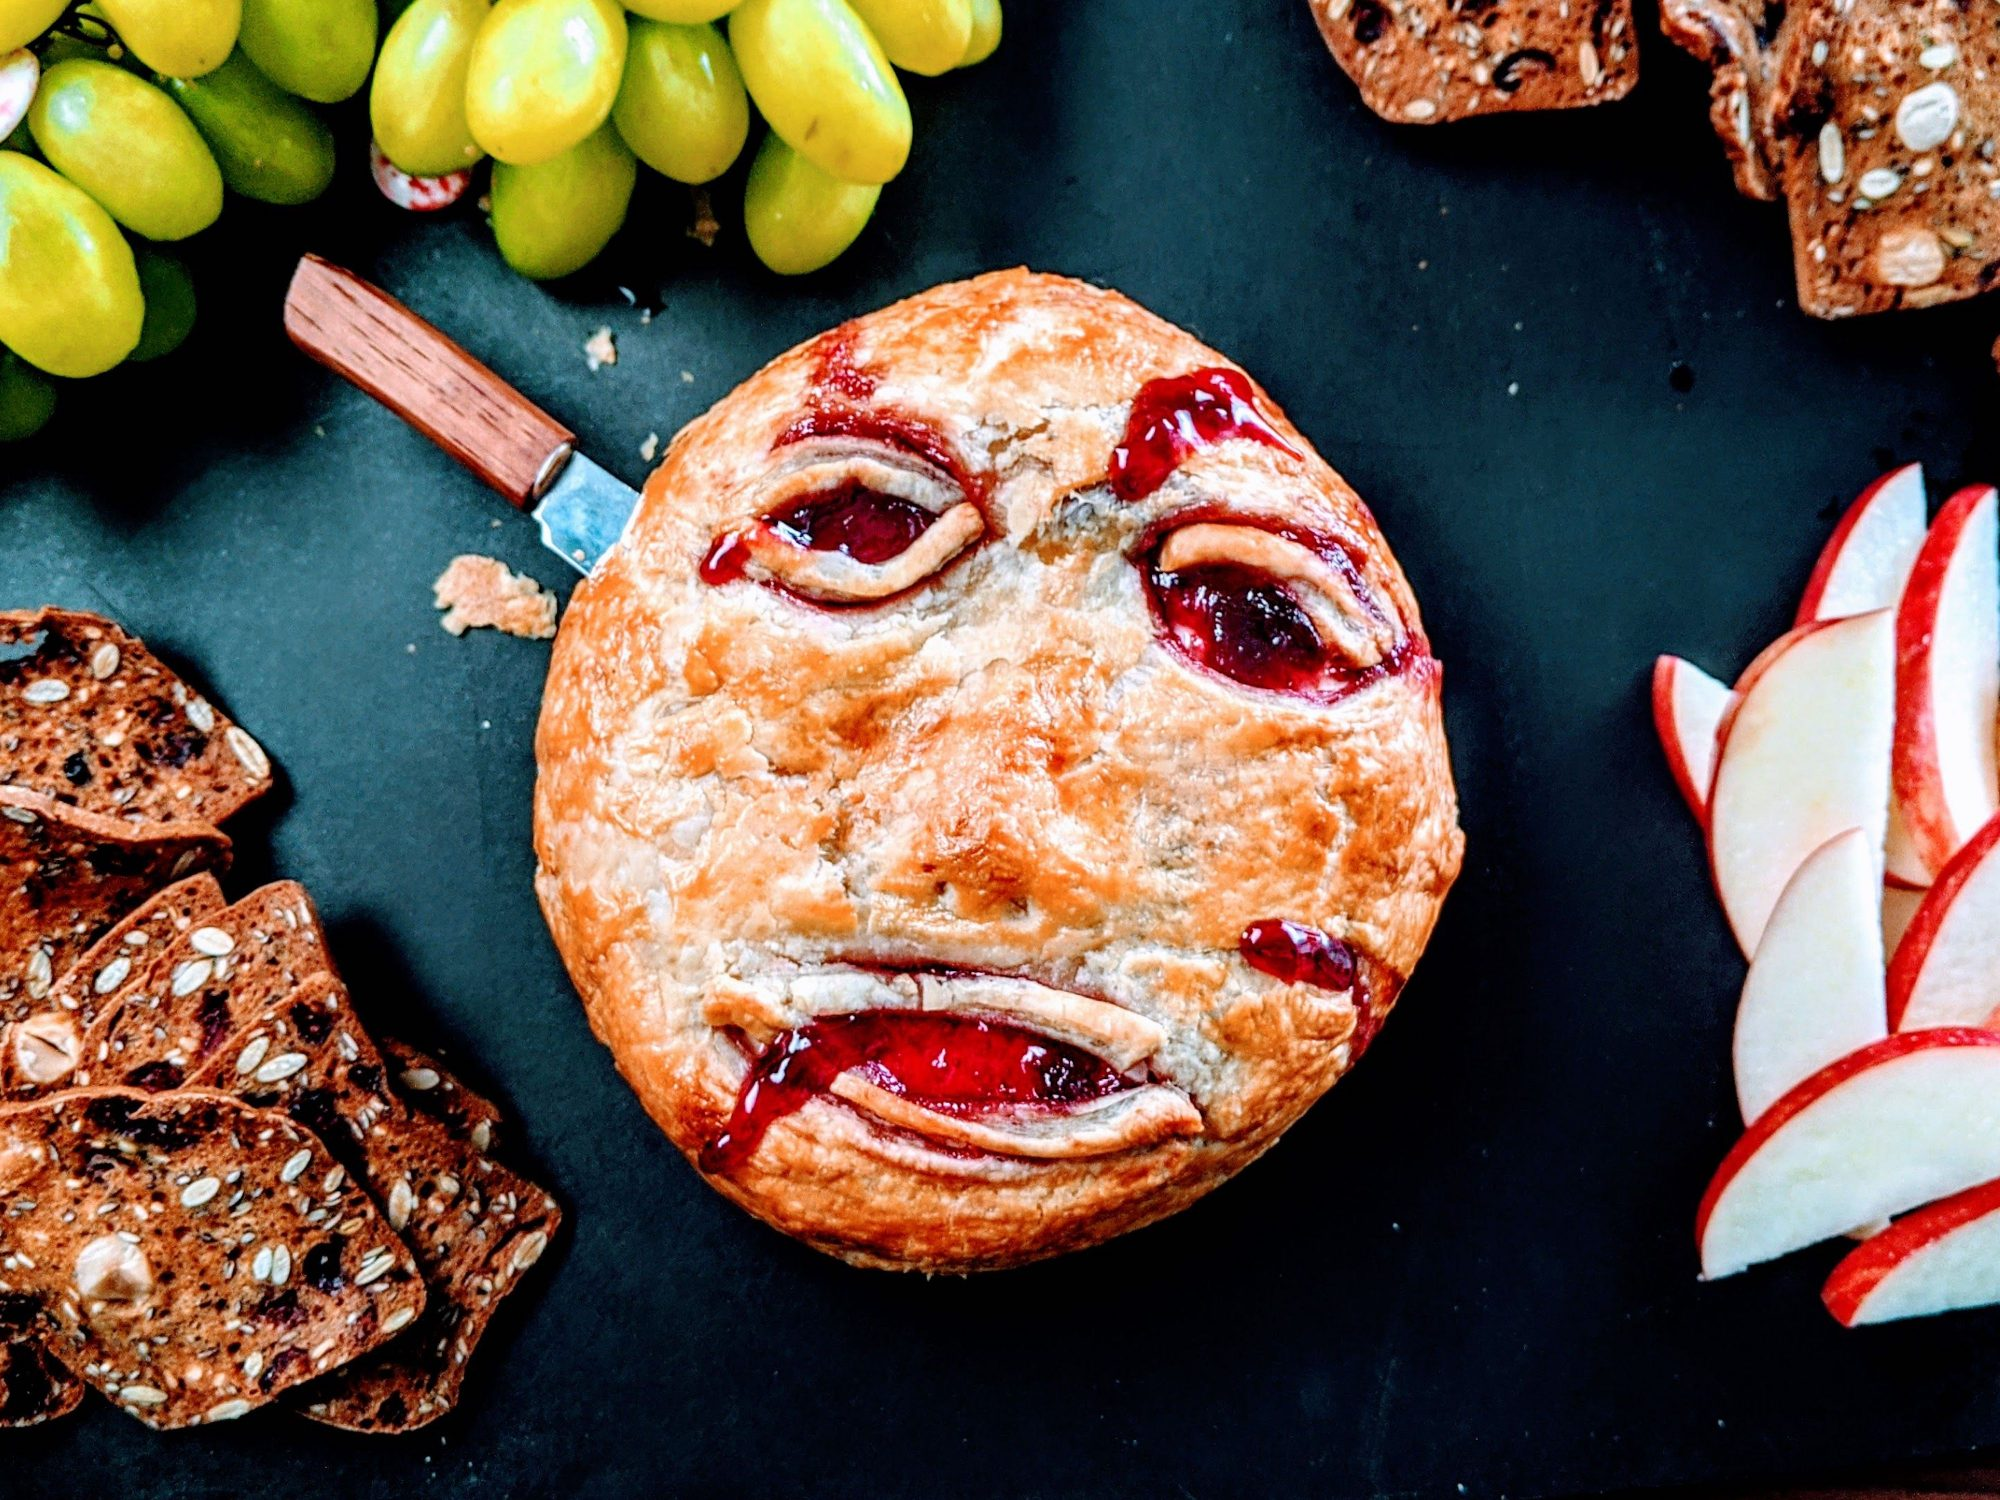 wd - Spooky Baked Brie Image